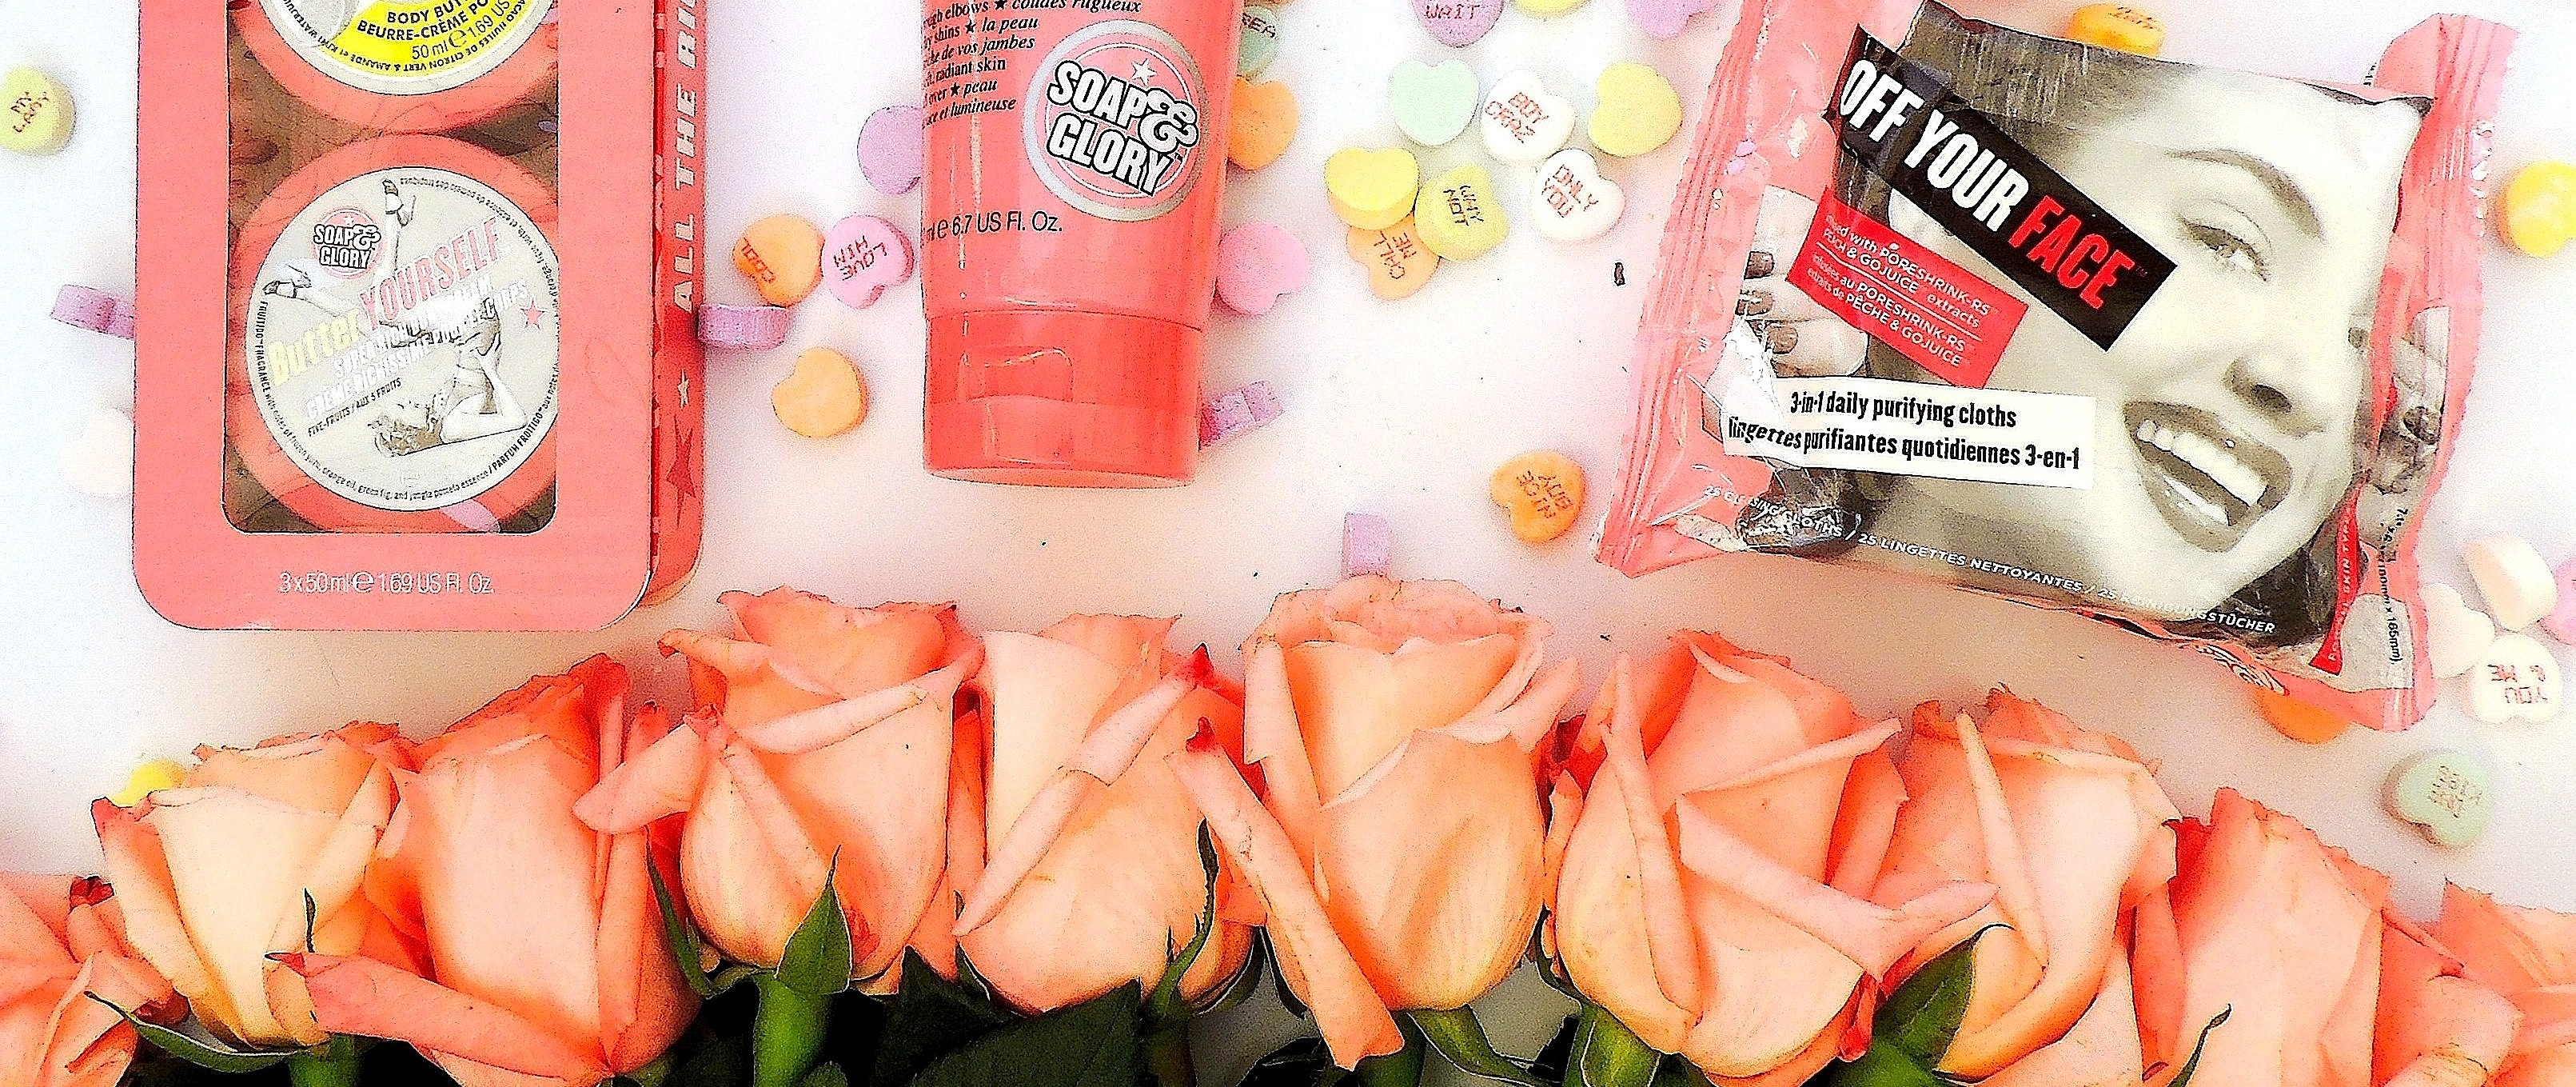 valentines-day-2015-pink-the-town-soap-glory-5